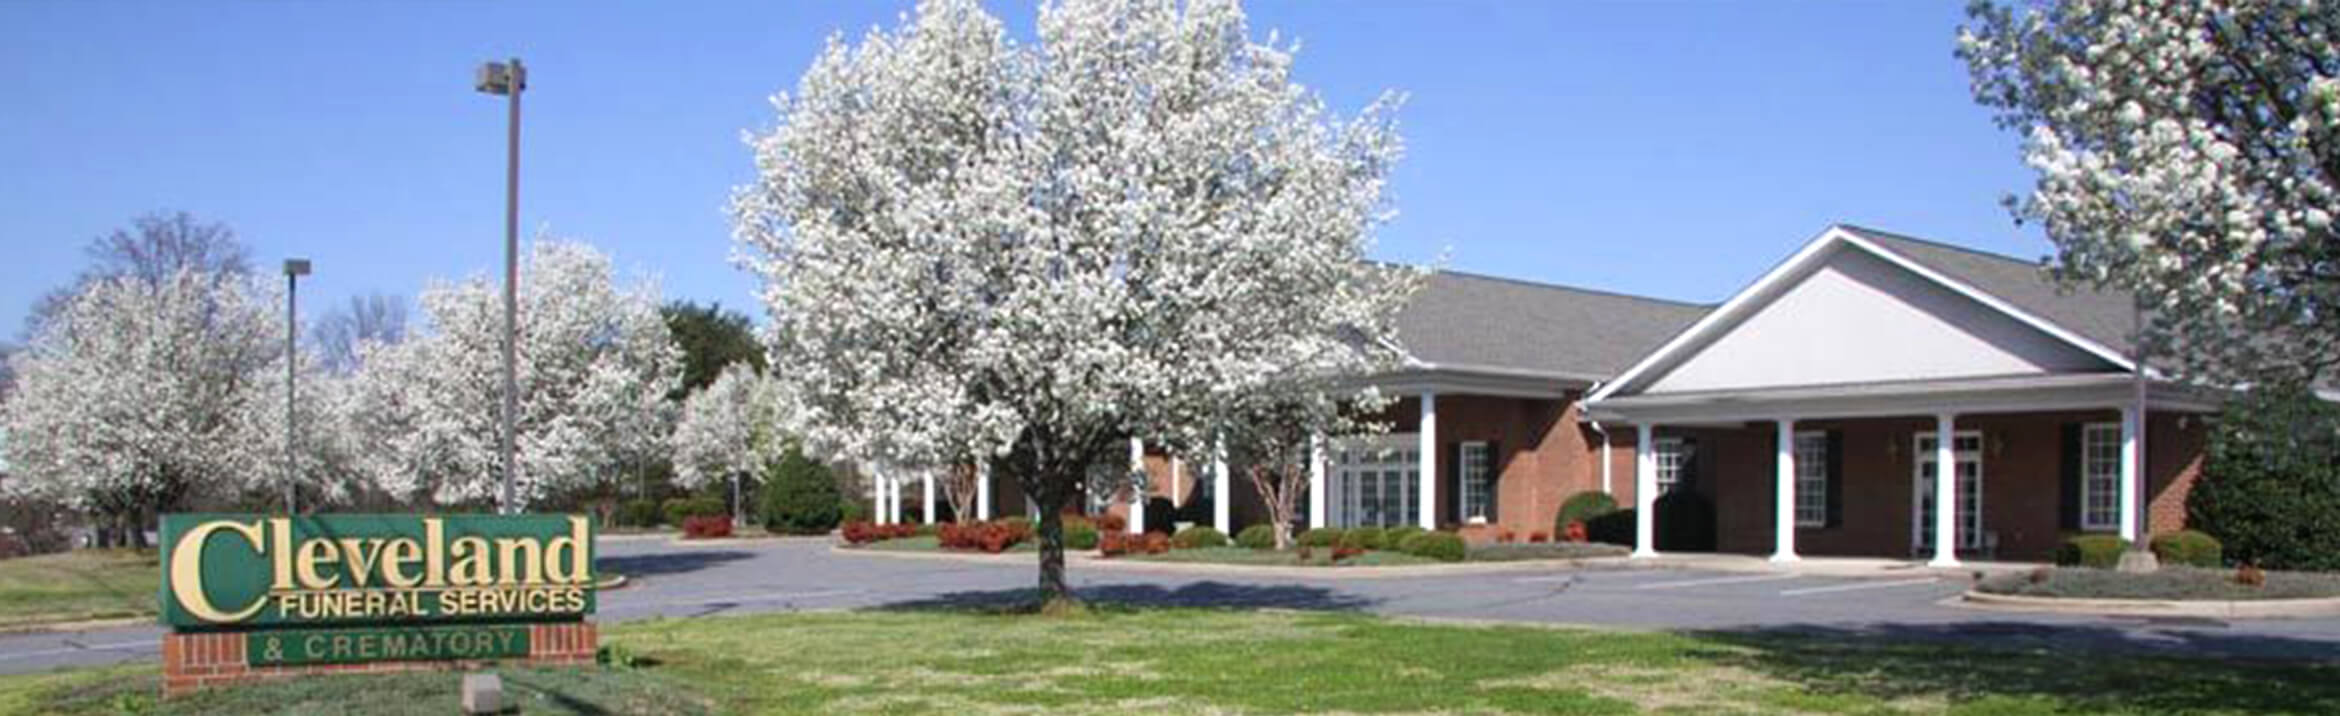 Cleveland Funeral Services  Crematory